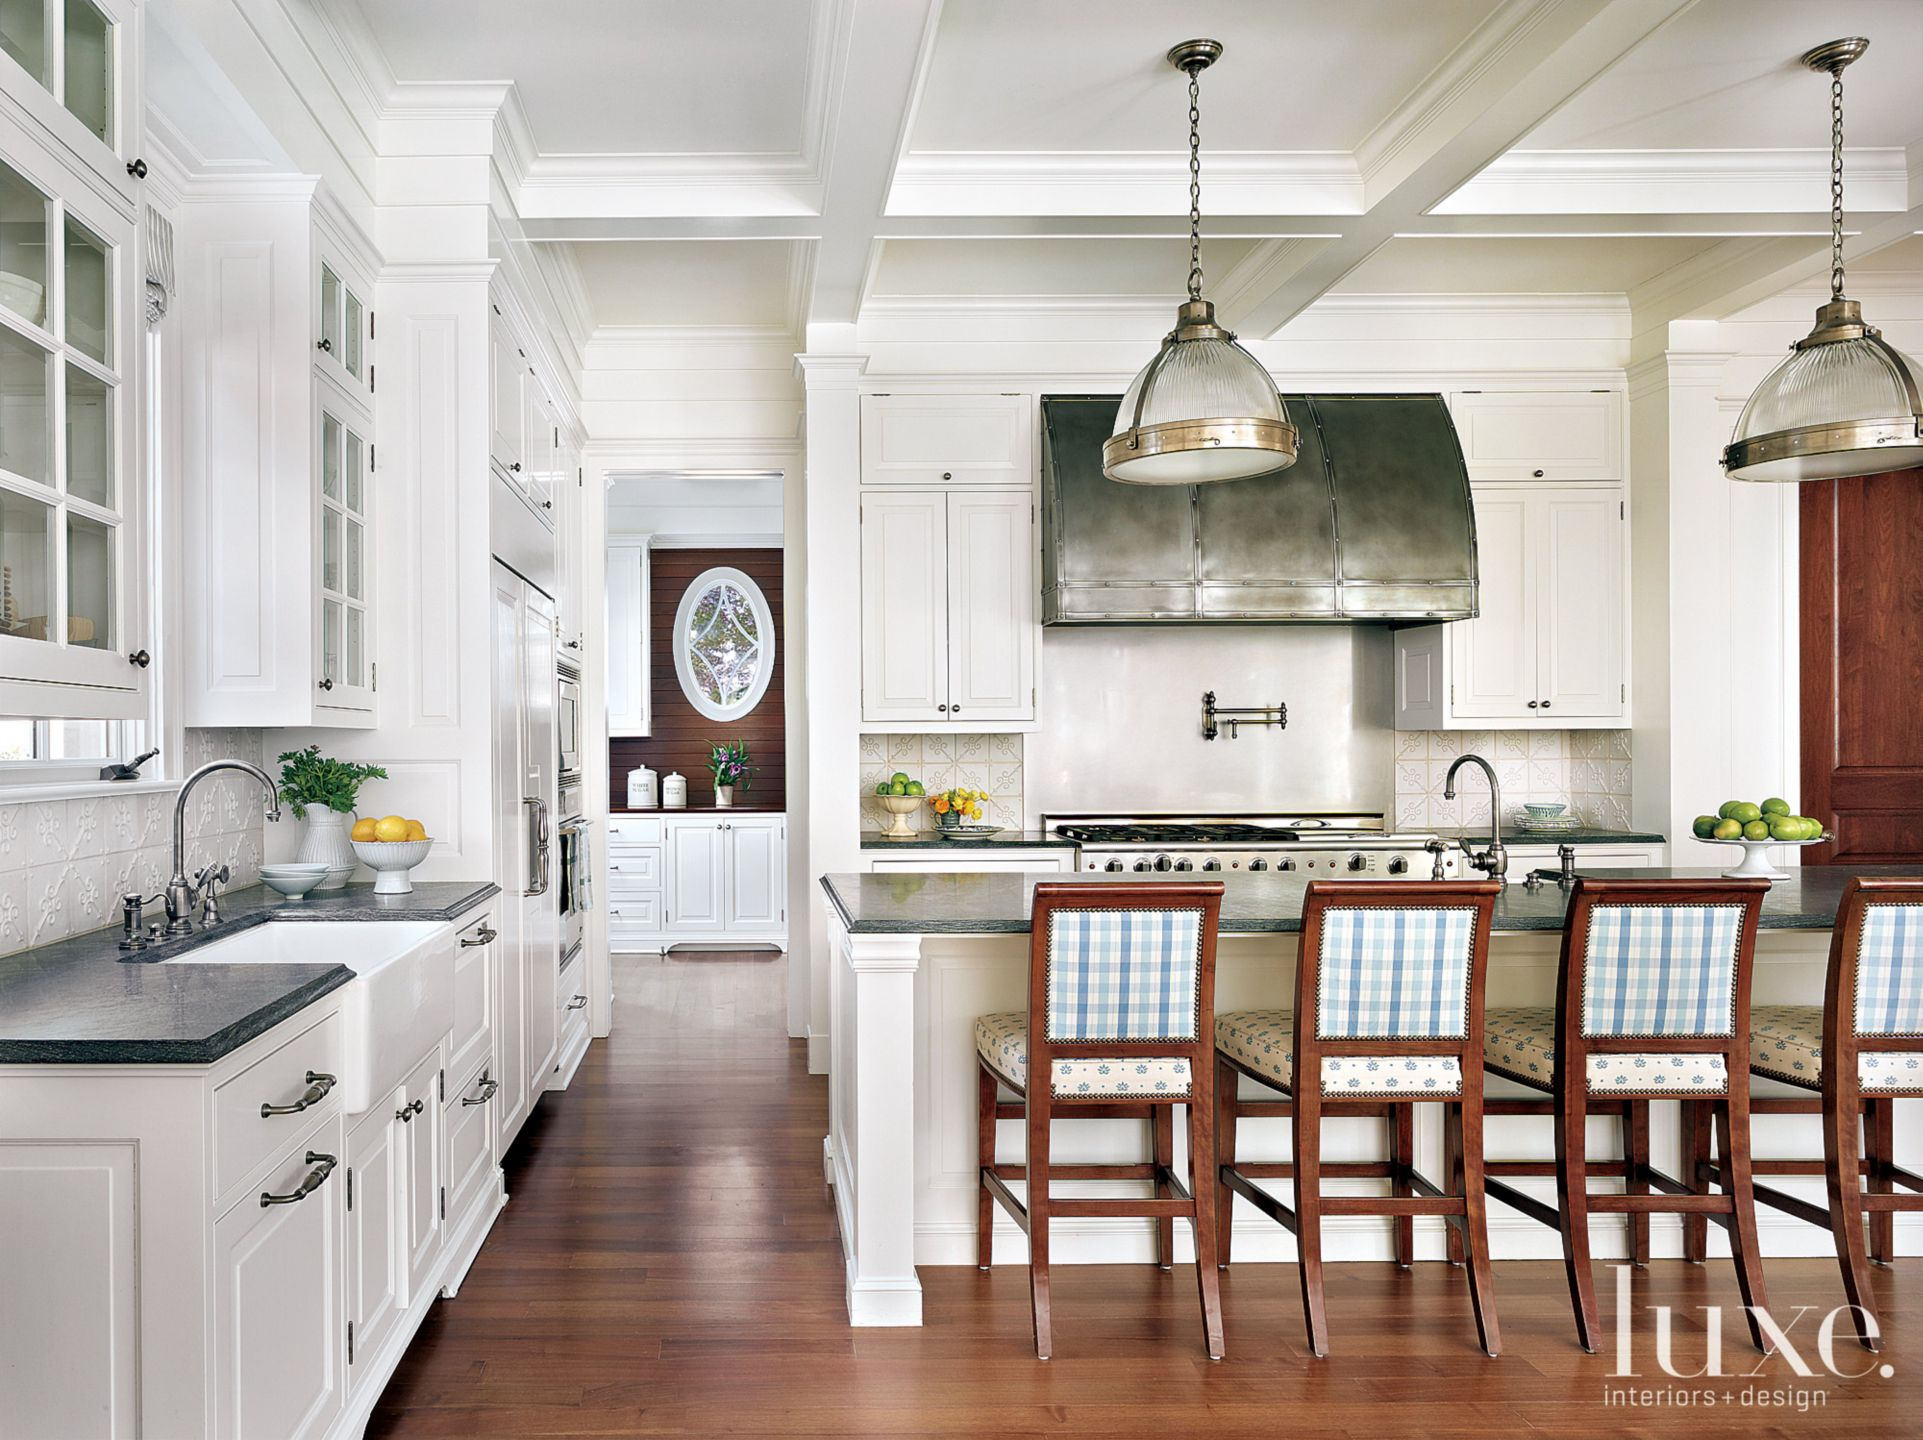 Traditional White Kitchen with Plaid Barstools